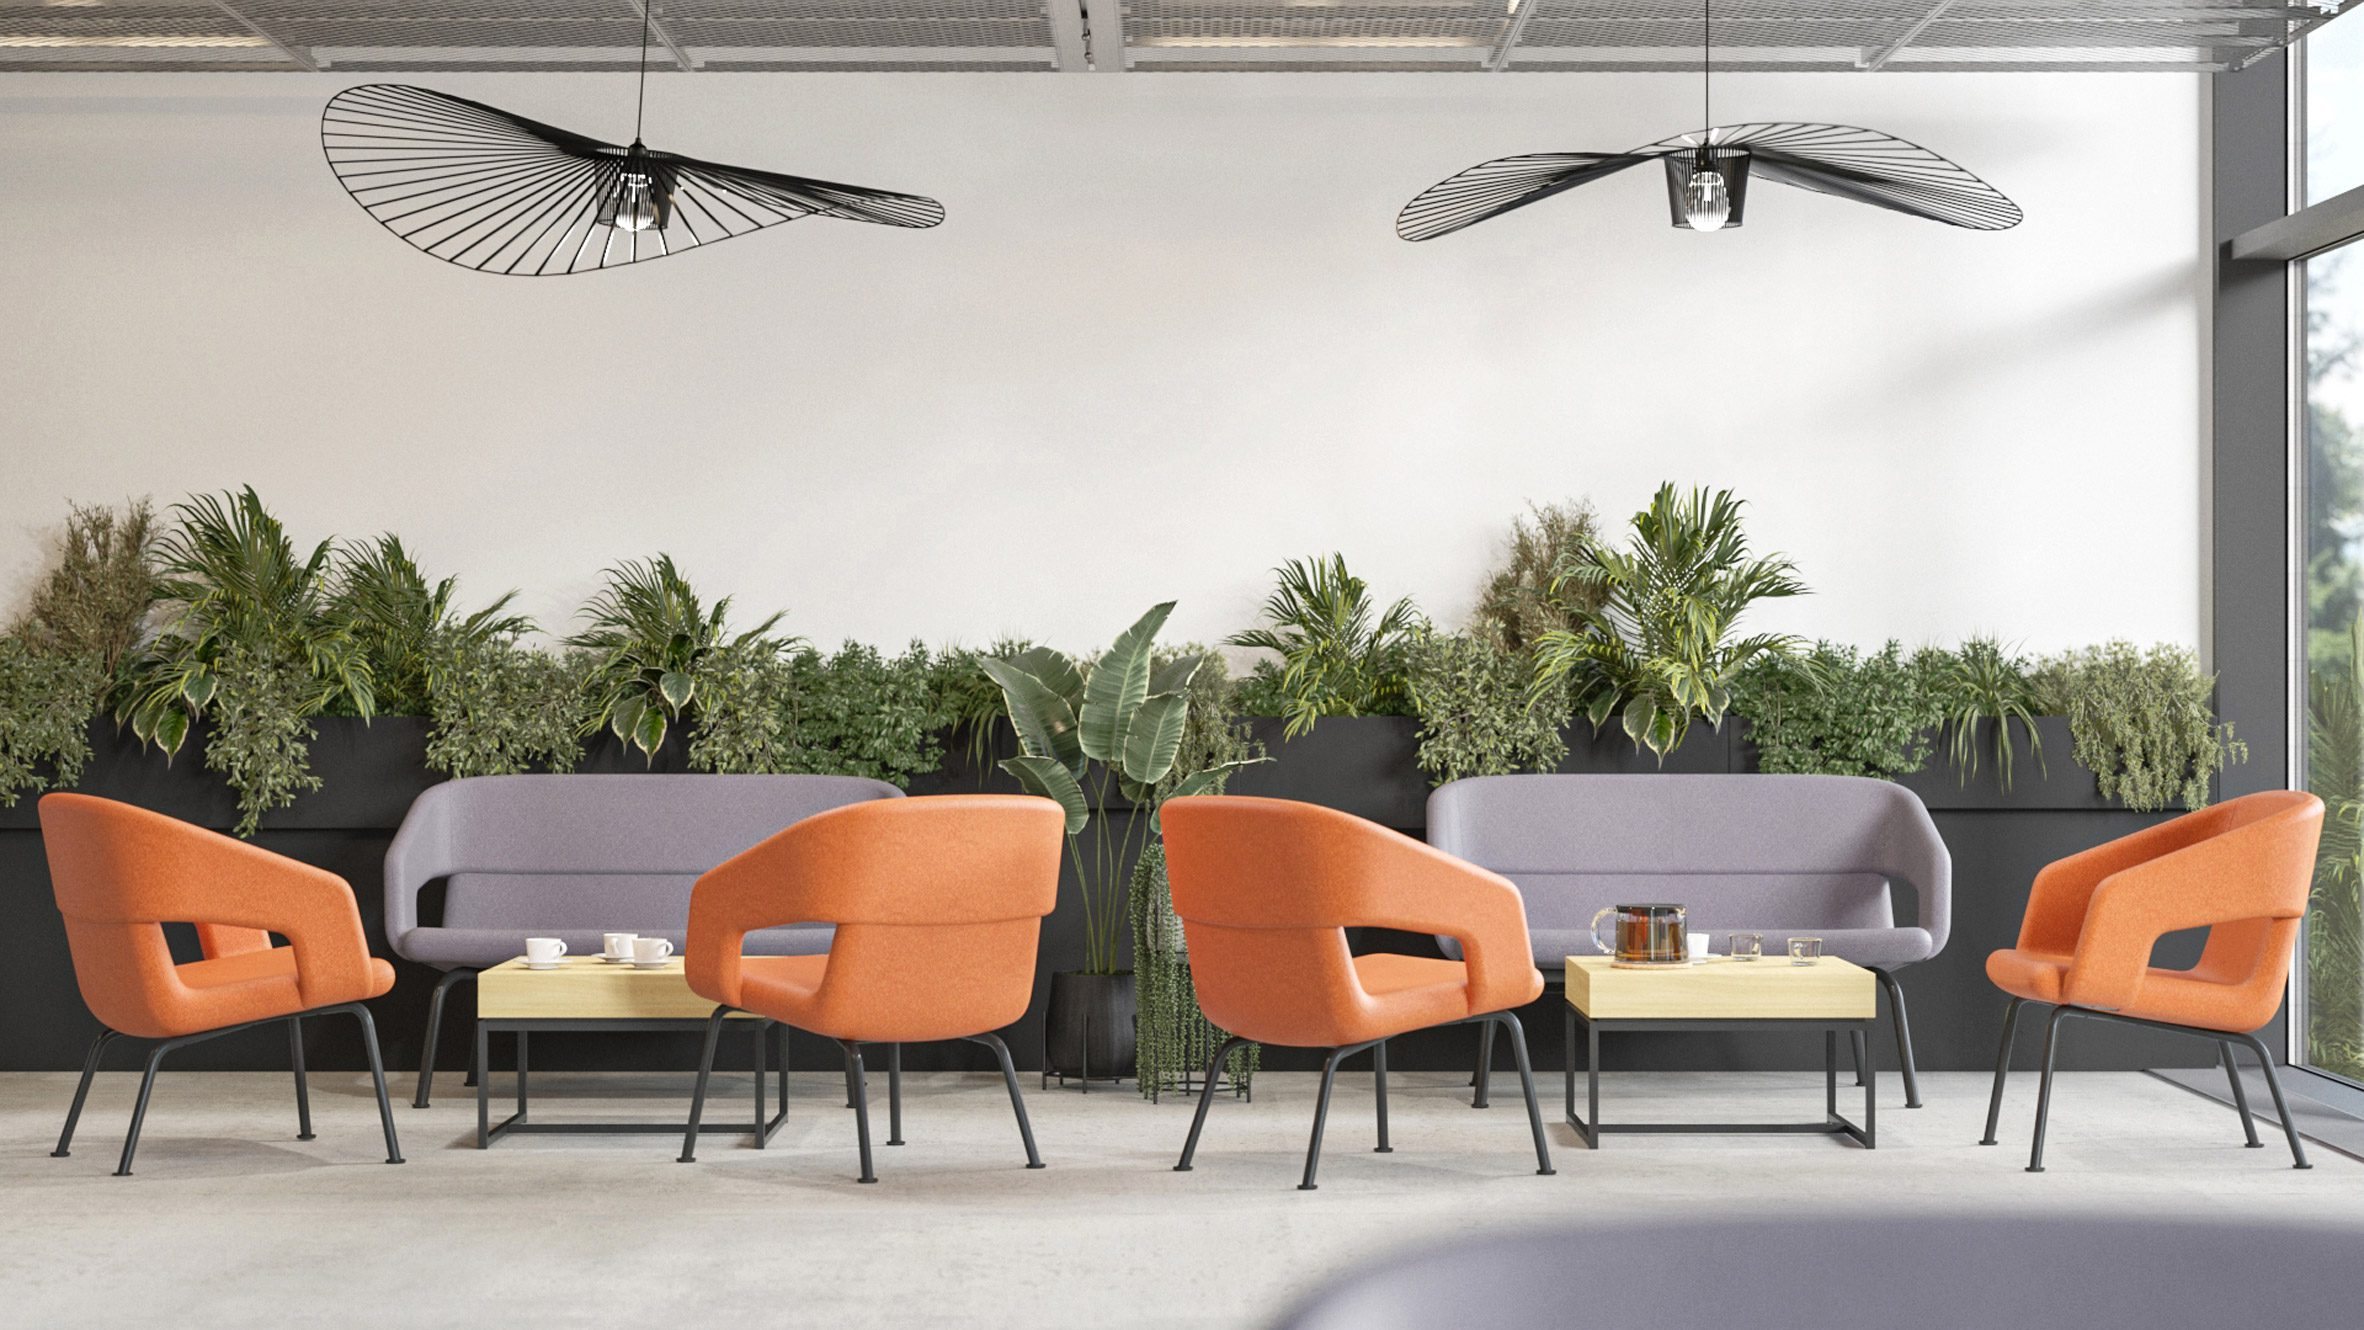 Narbutas seating with low backs in orange an purple within a casual cafe setting